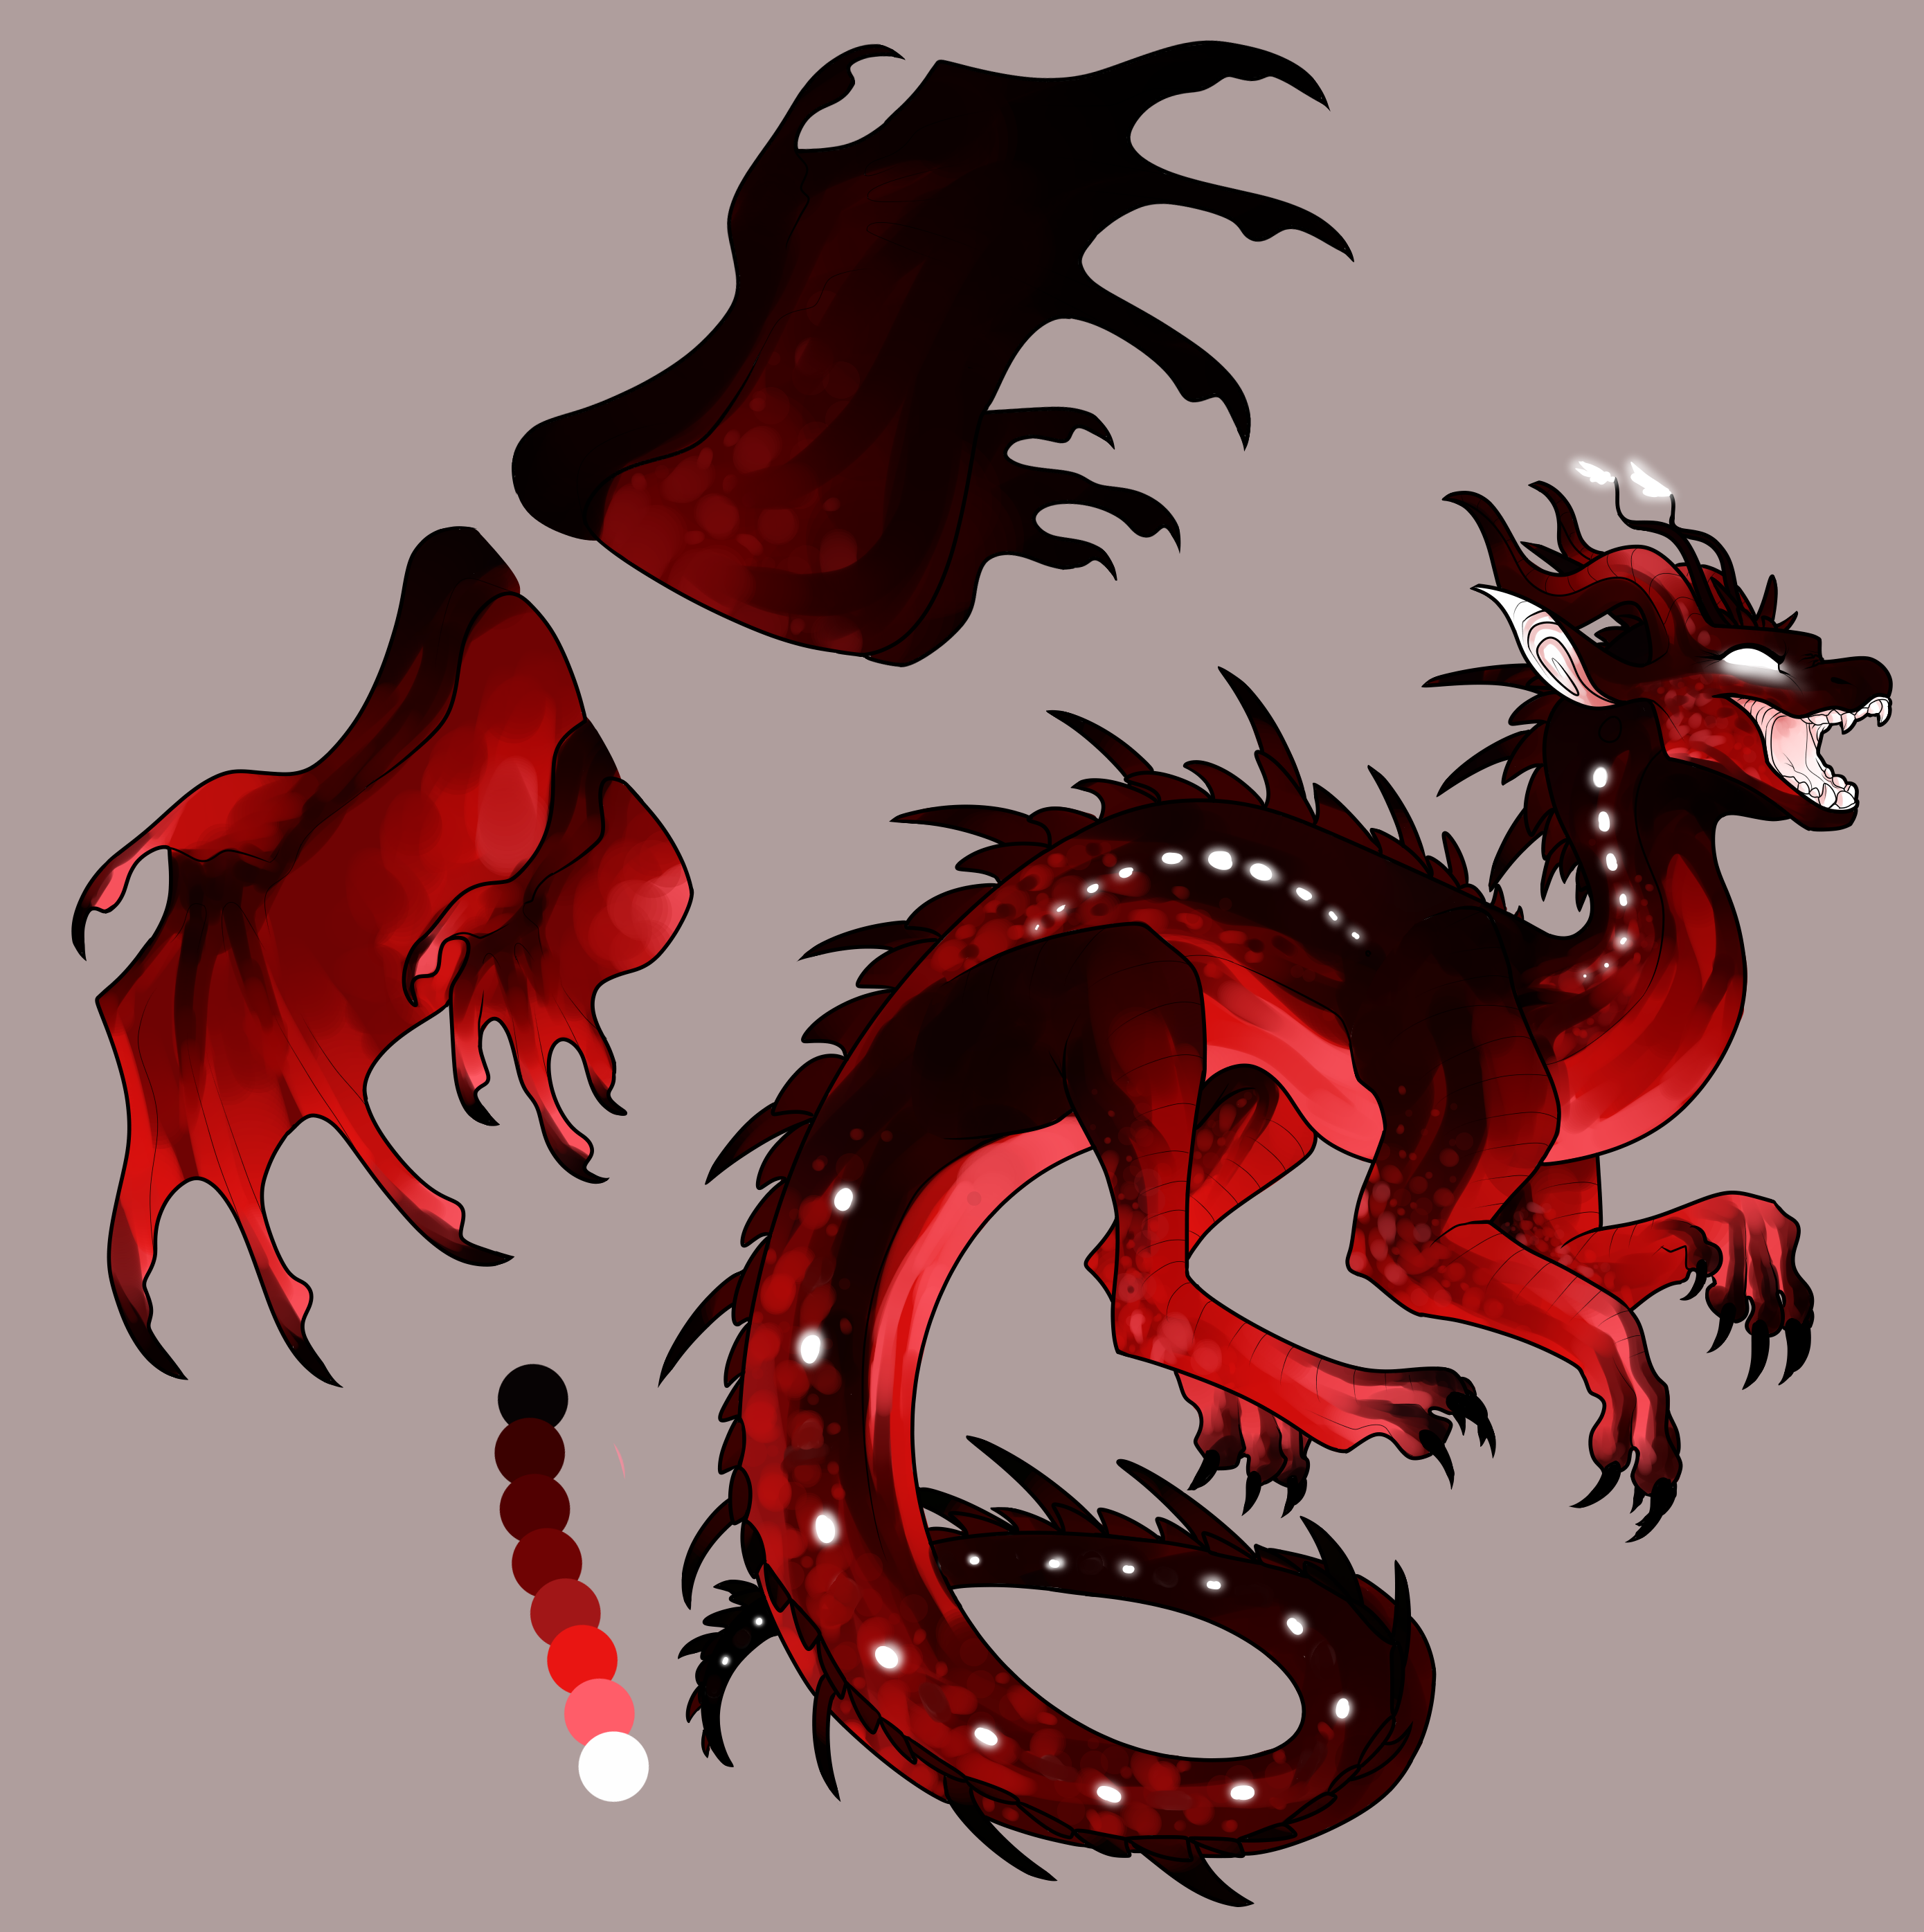 Https Deviantart Com Newest Q Toothless Mythical Creatures Art Dragon Artwork Dragon Pictures